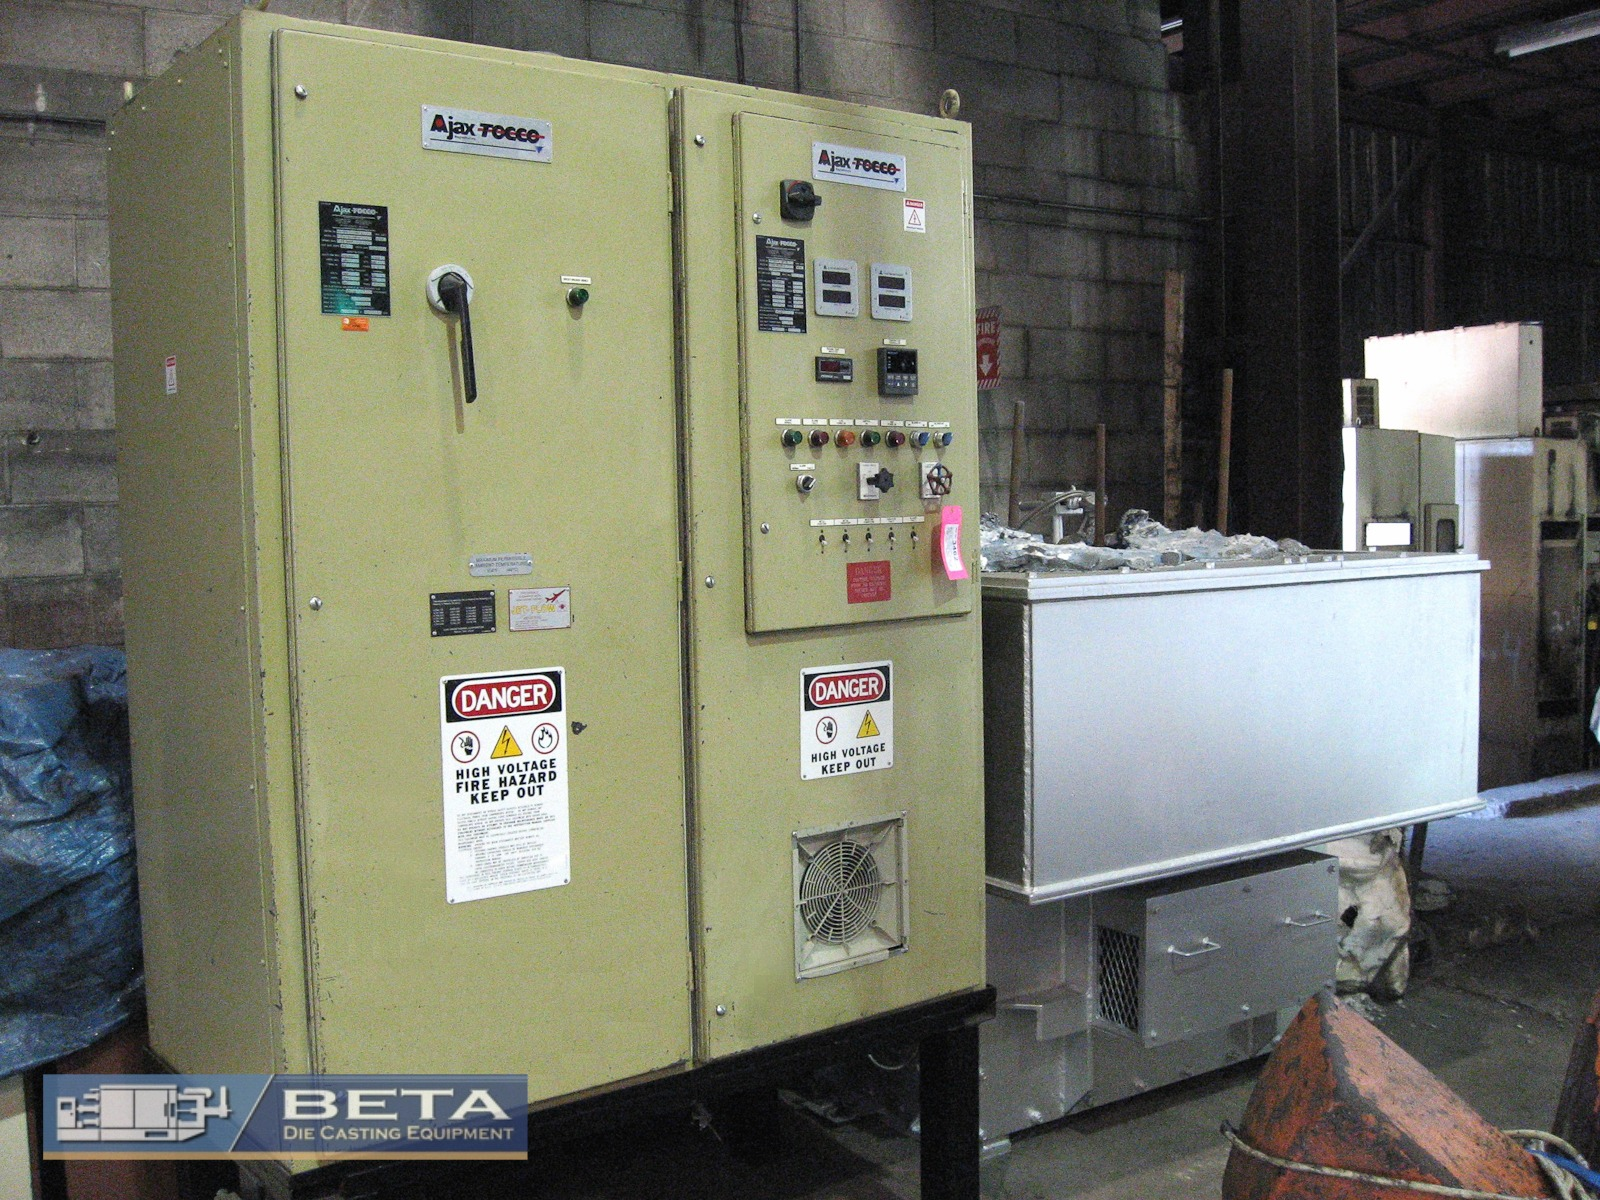 Used Ajax Tocco 3500 Lbs Electric Melting and Holding Furnace #3979